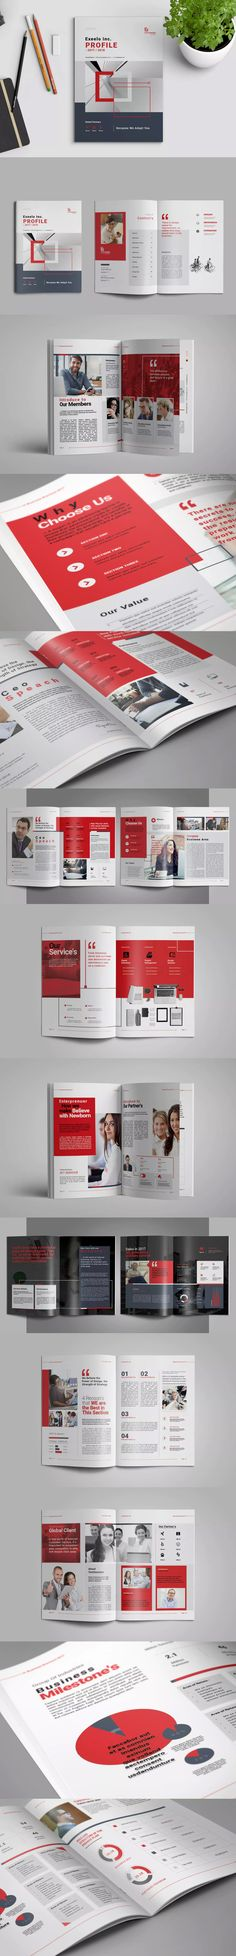 Business Brochure Template InDesign INDD A4 and US Letter